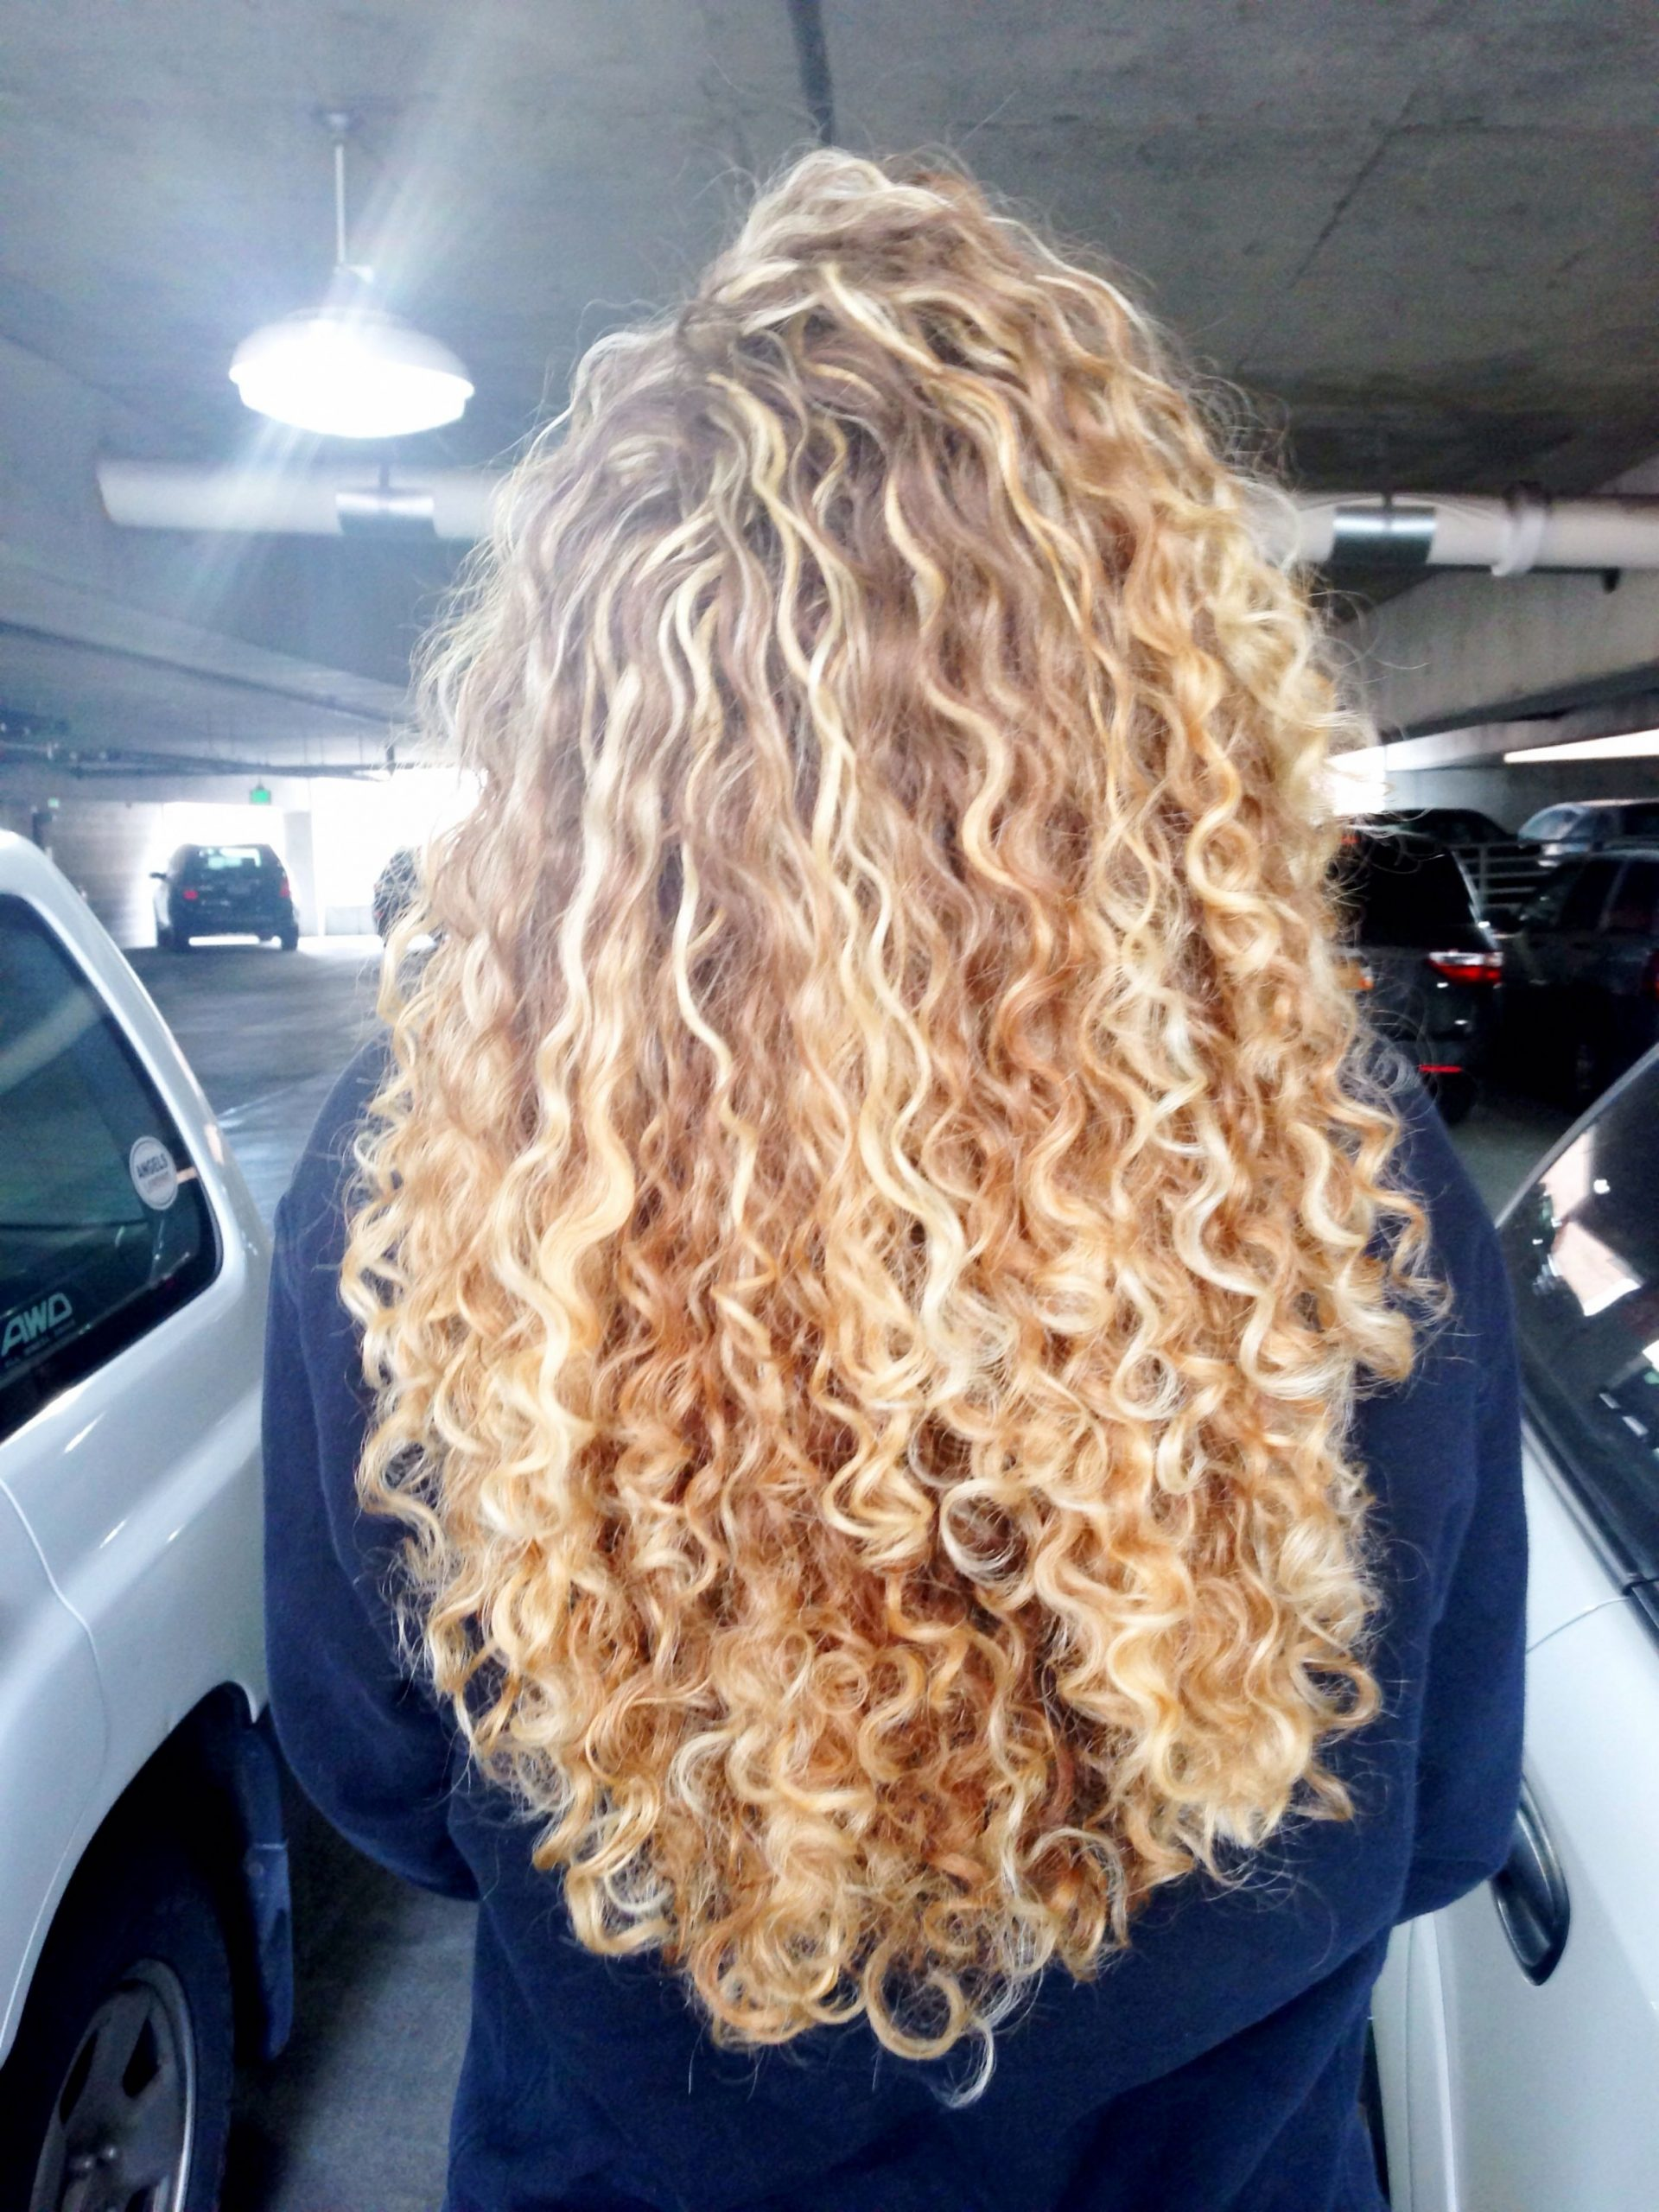 Best Hairstyle For A 9 Year Old Woman Curly Hair Styles, Curly Blonde Hair Curly